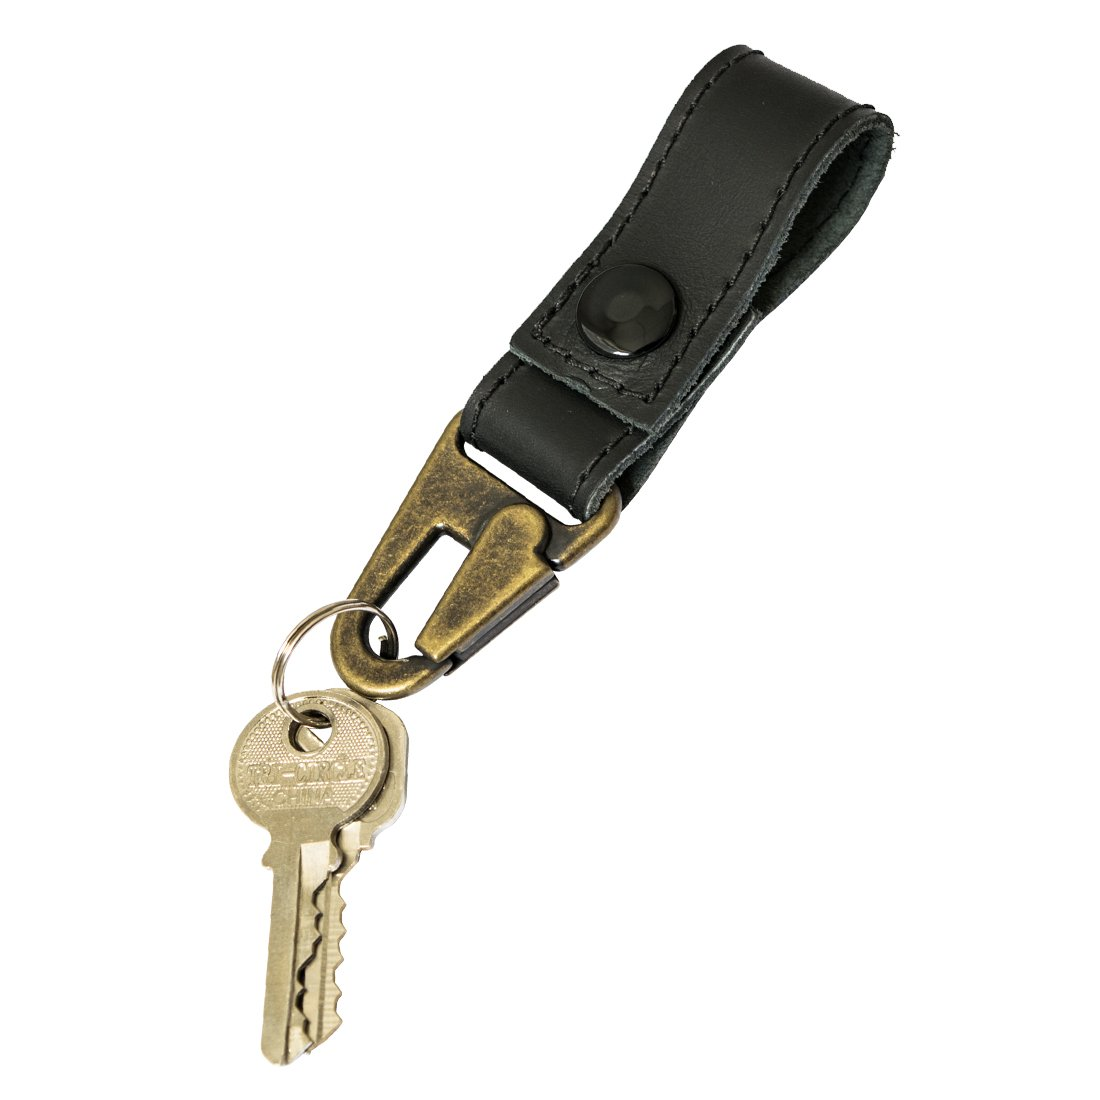 Rustic Leather Key Ring Holder Handmade by Hide & Drink :: Charcoal Black